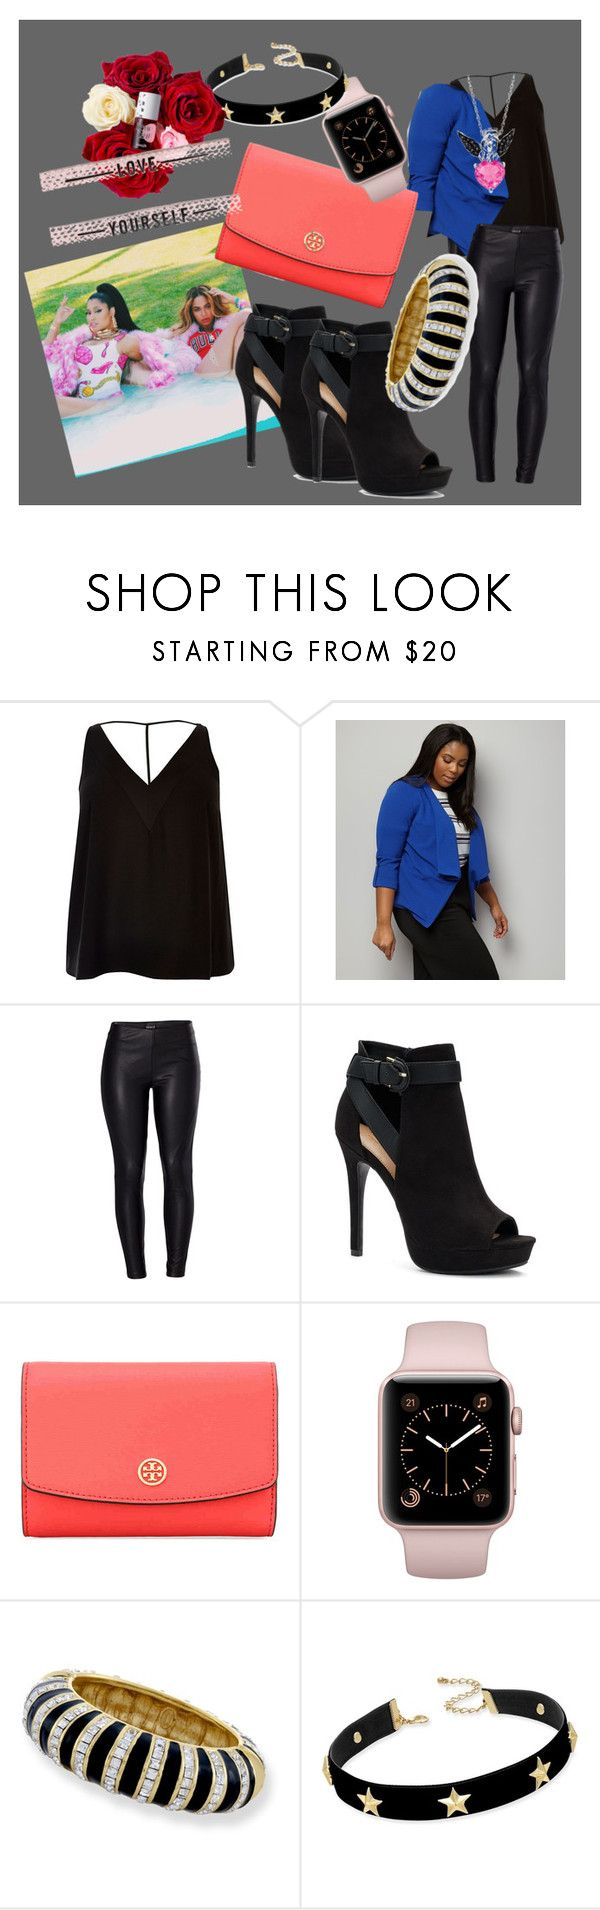 """""""classy gyal //"""" by pink-doll-house on Polyvore featuring River Island, New Look, Nicki Minaj, Venus, Apt. 9, Tory Burch, Kenneth Jay Lane and INC International Concepts"""